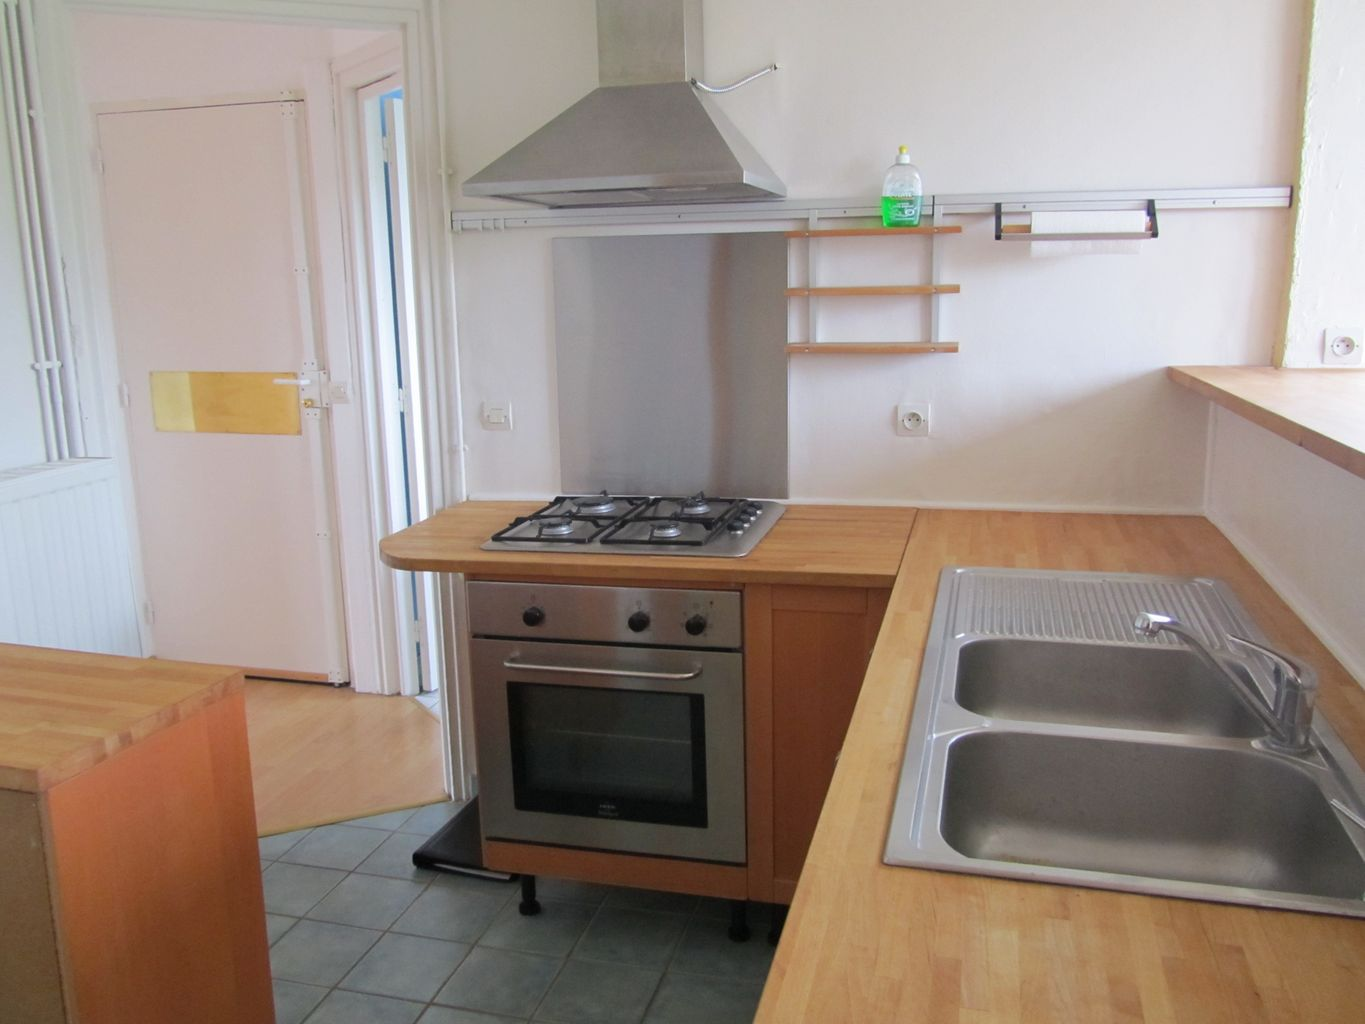 Ventes appartement lambersart appartement type 2 for Petite cuisine appartement